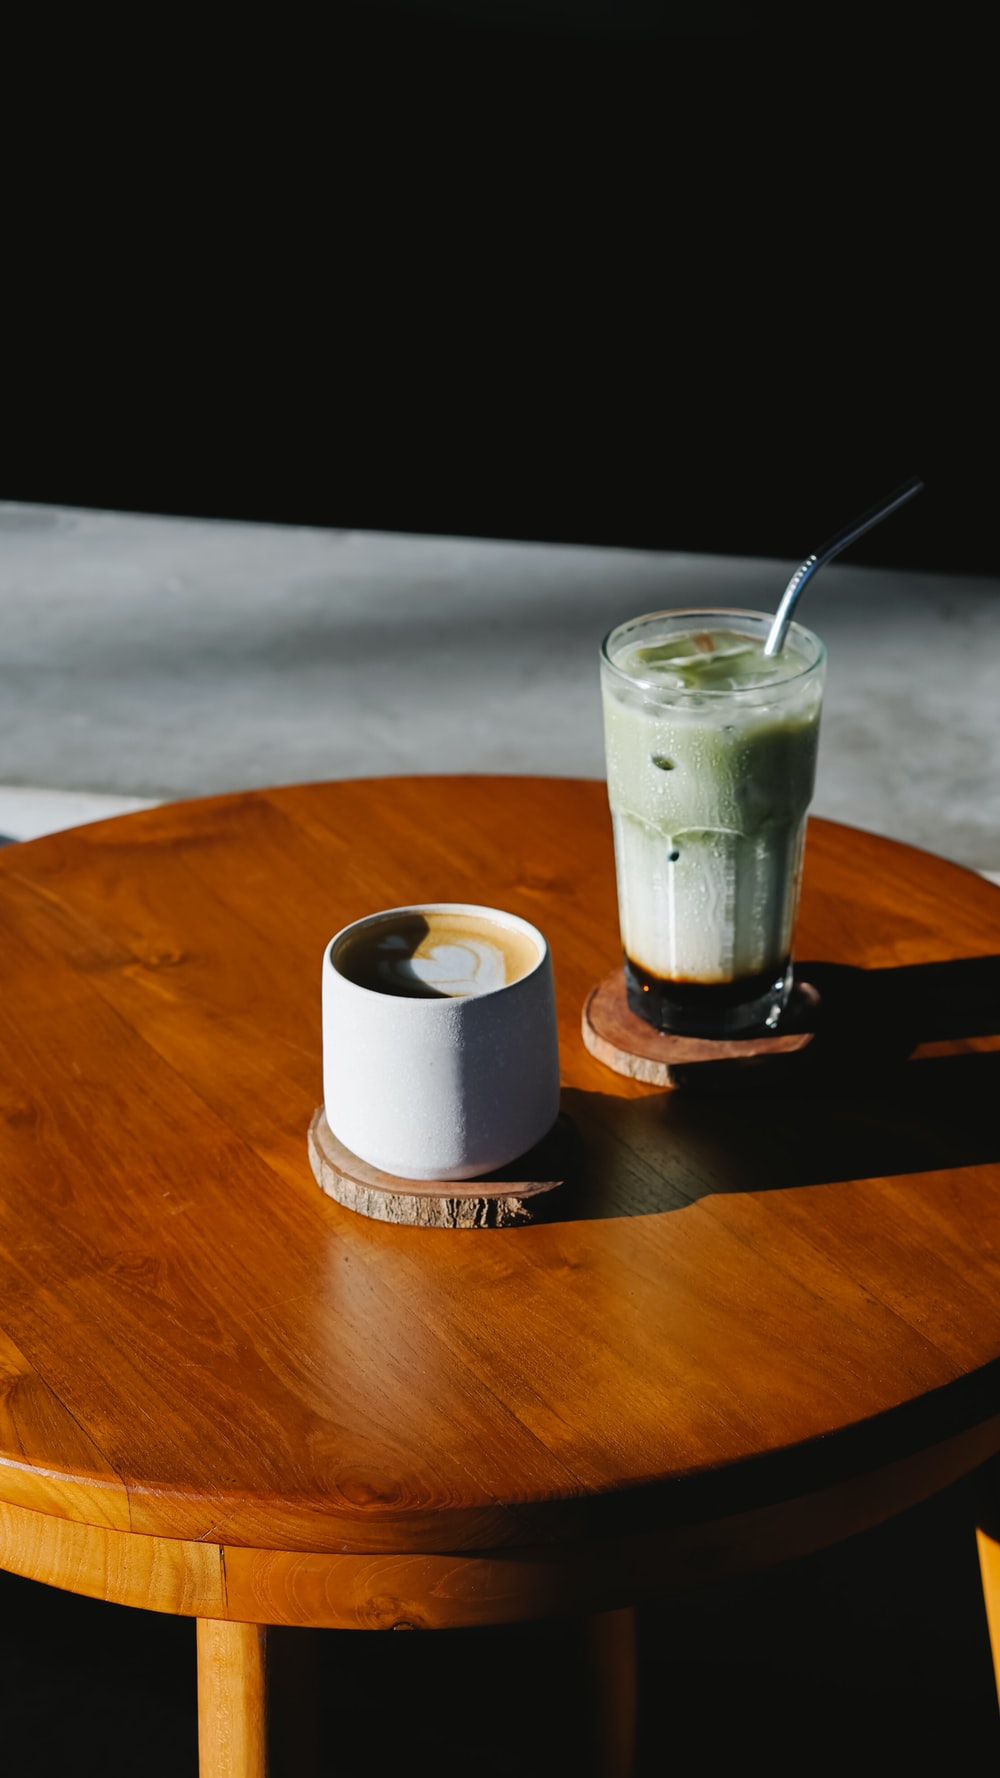 cup beside glass cup on table